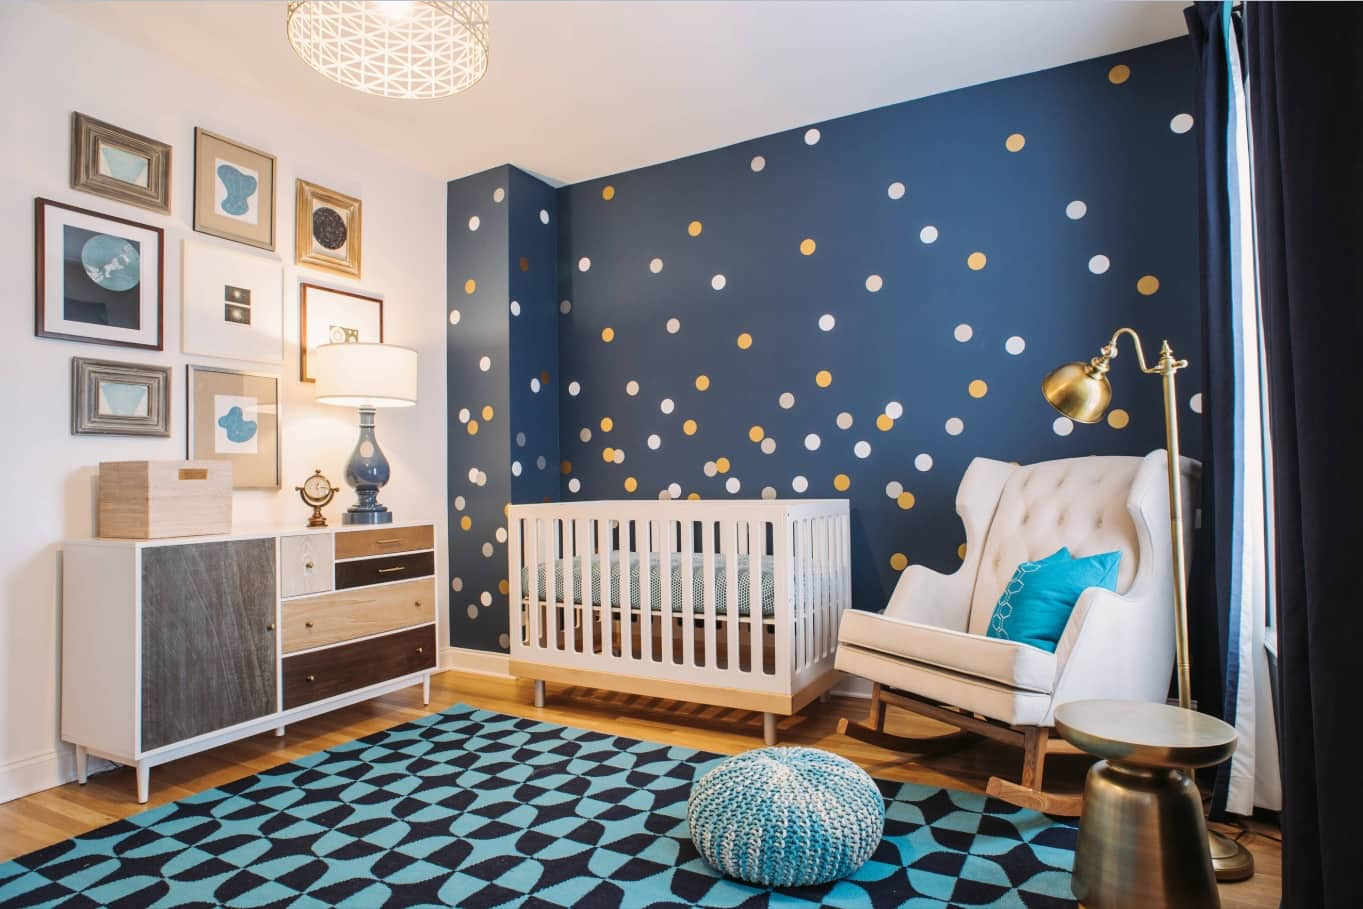 Overview of 10+ Biggest Home Design Trends in 2019 so Far. Dotted dark blue wall at the nursery